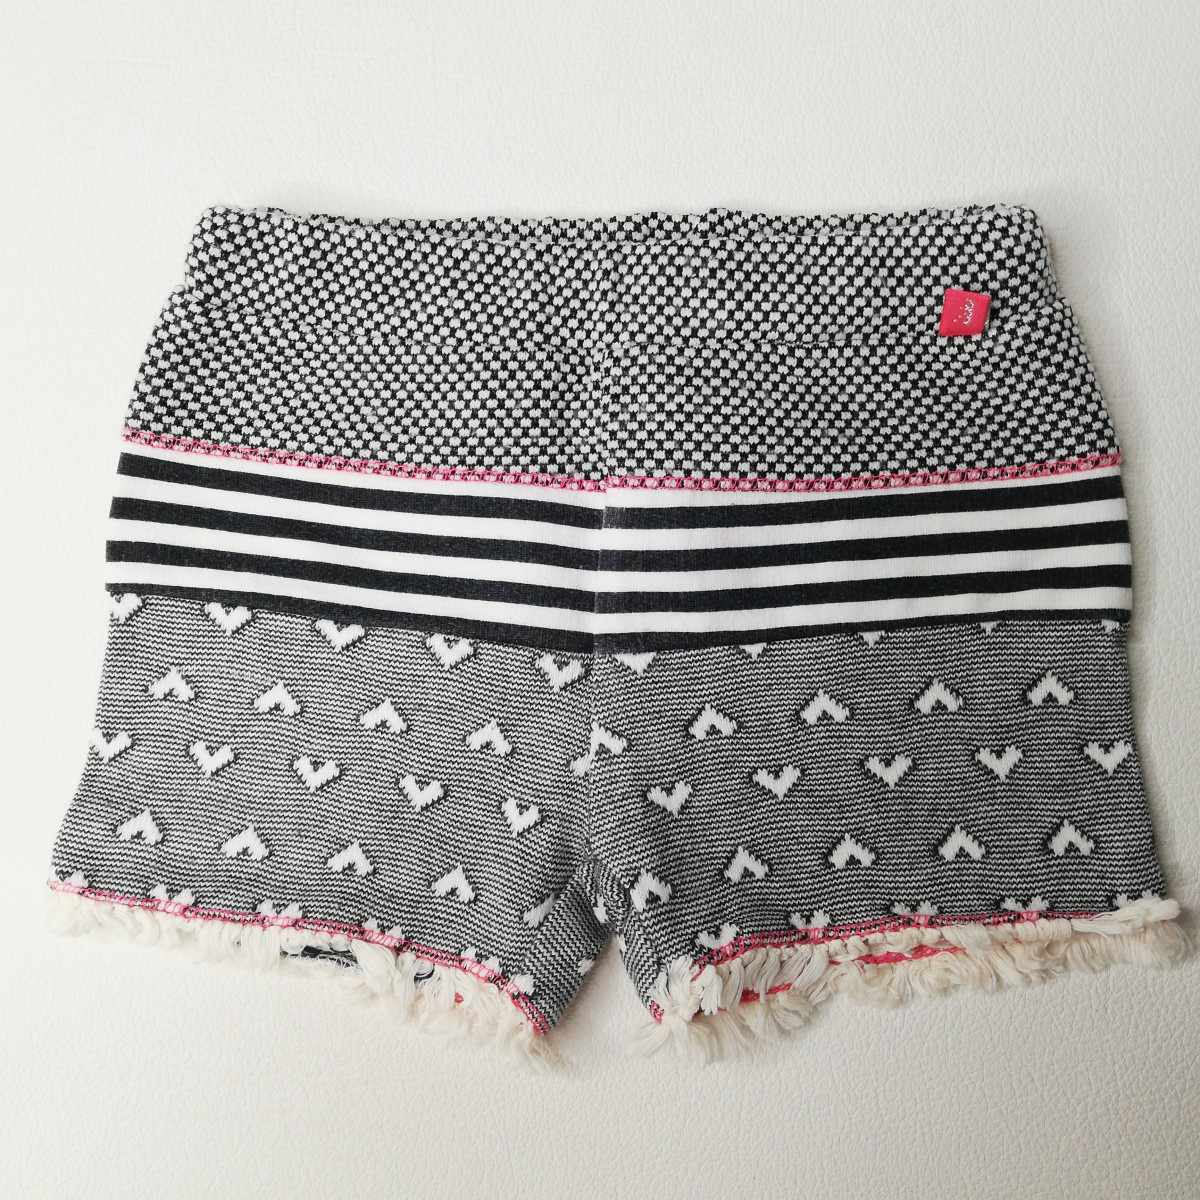 Shorts, Bermudas - photo 9